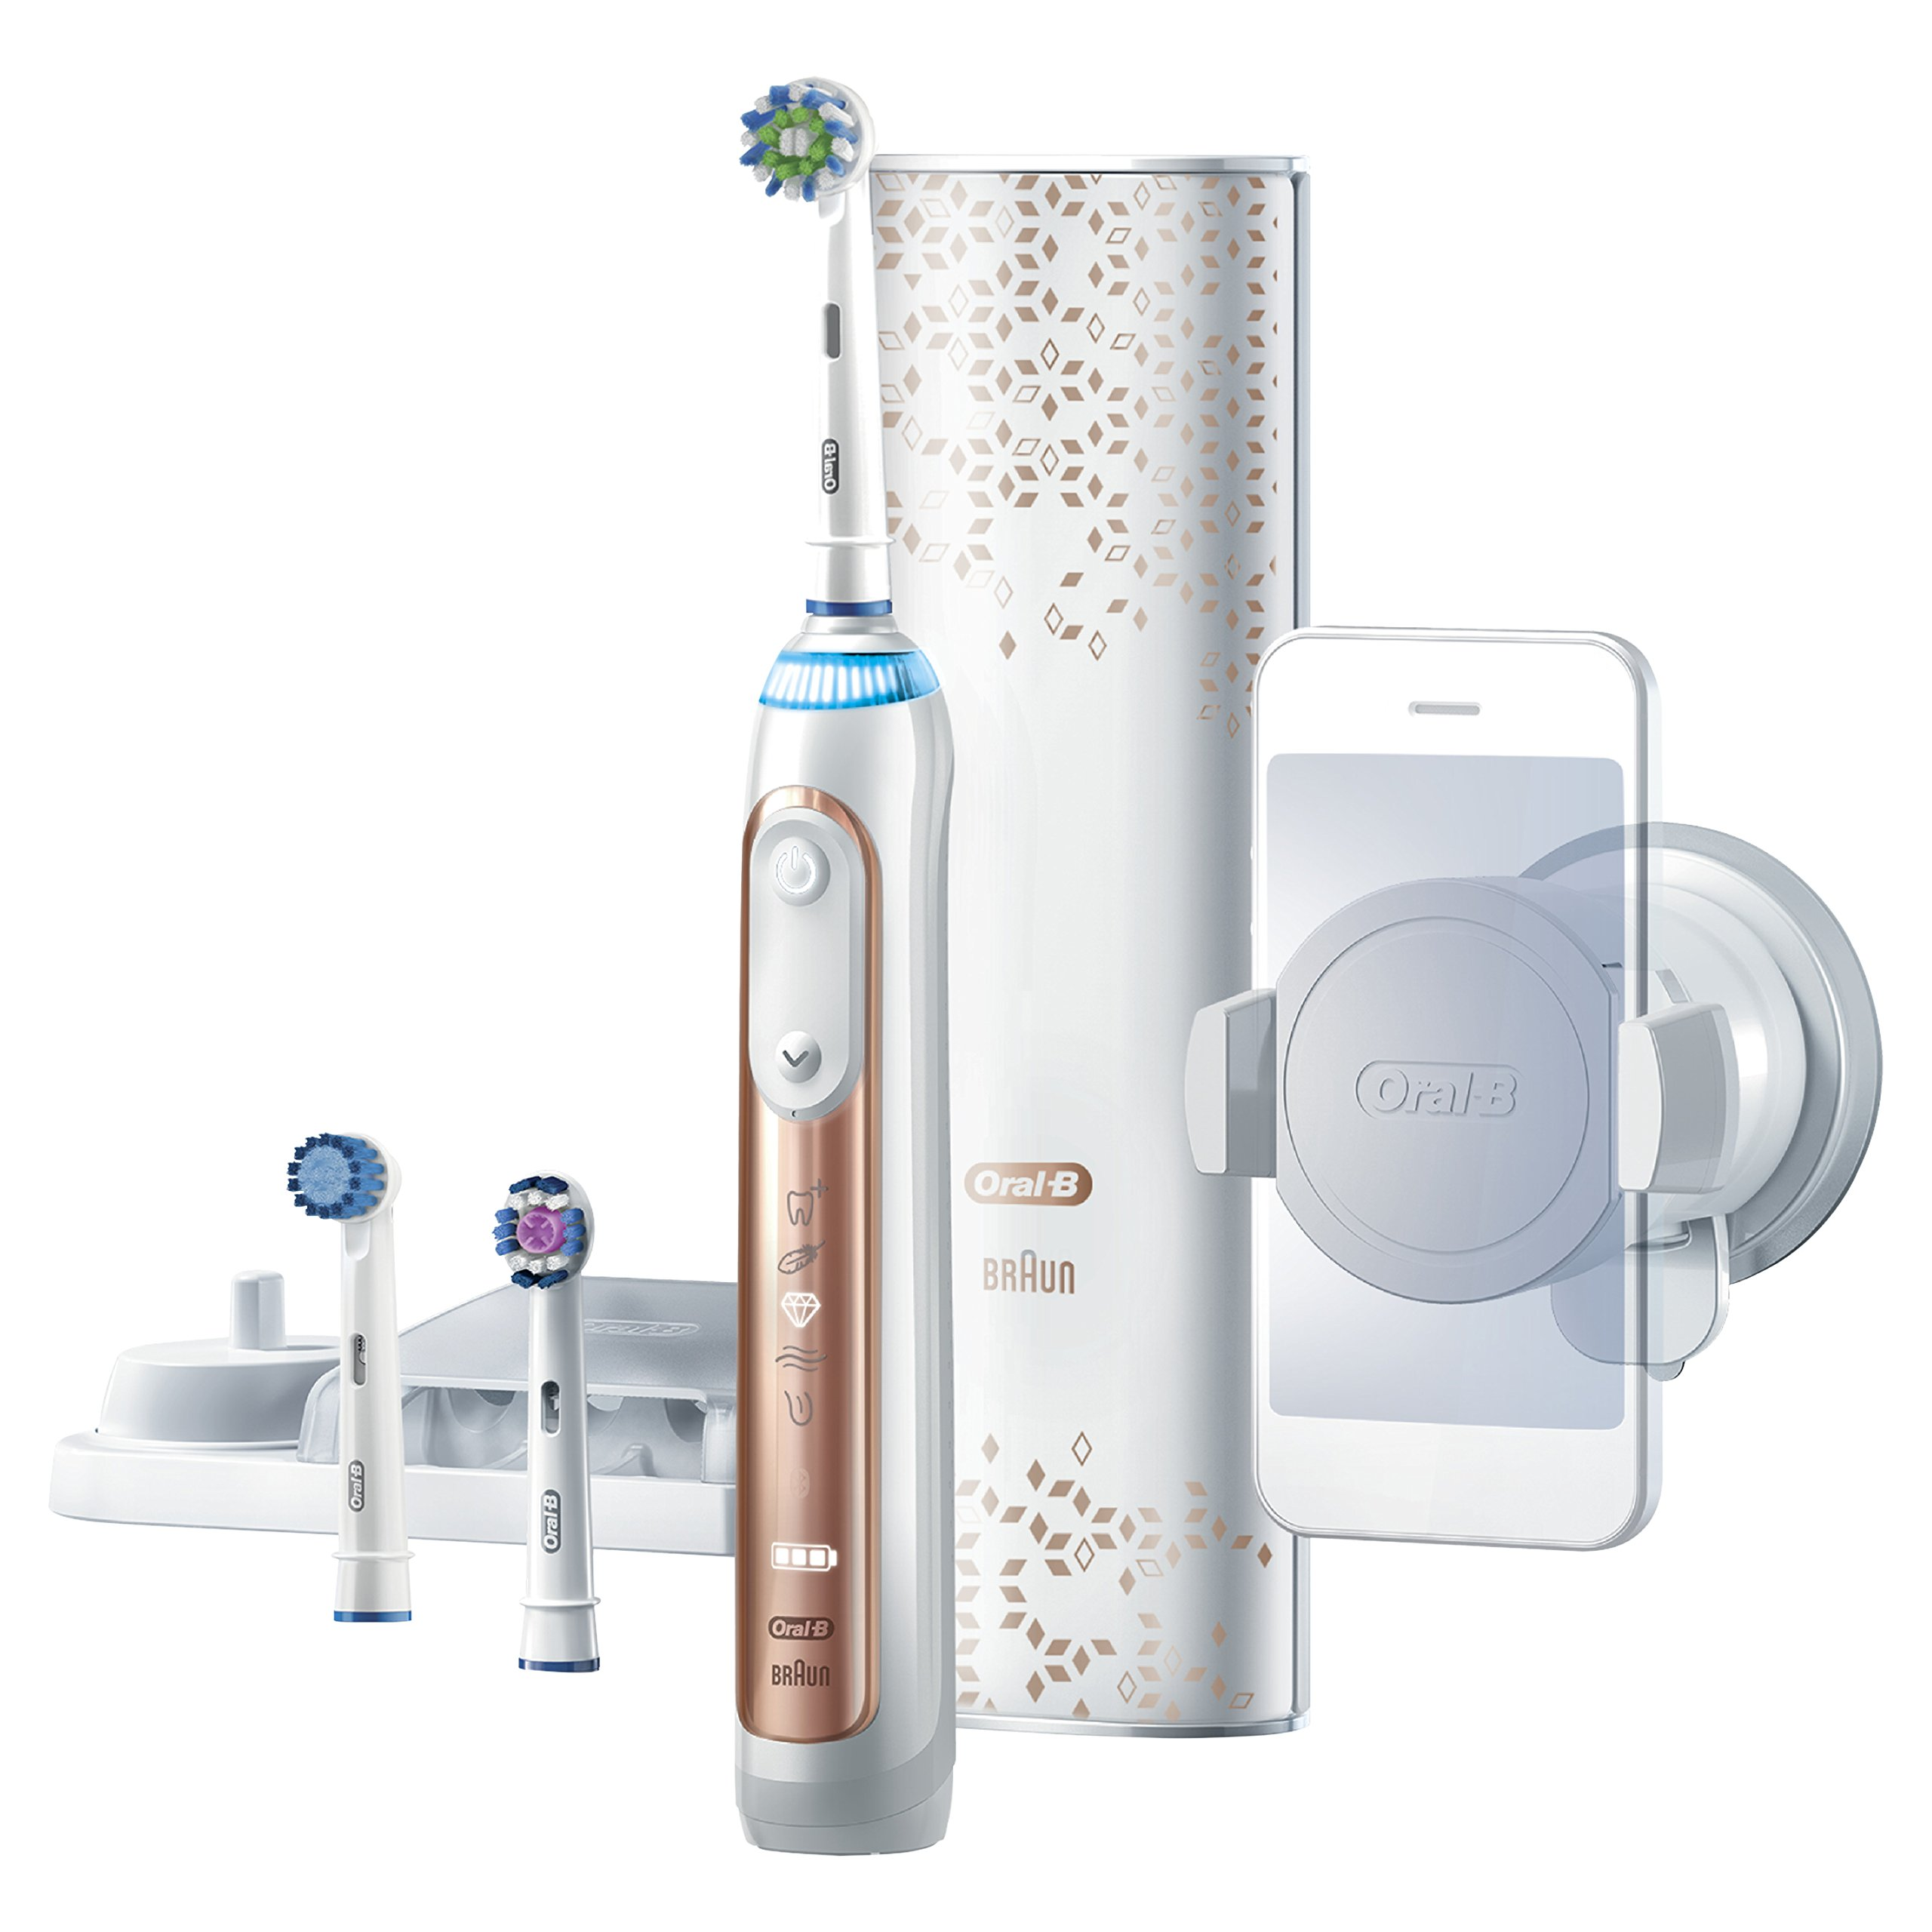 Oral B Genius Pro 8000 Electronic Power Rechargeable Battery Electric Toothbrush with Bluetooth Connectivity Powered by Braun, Rose Gold